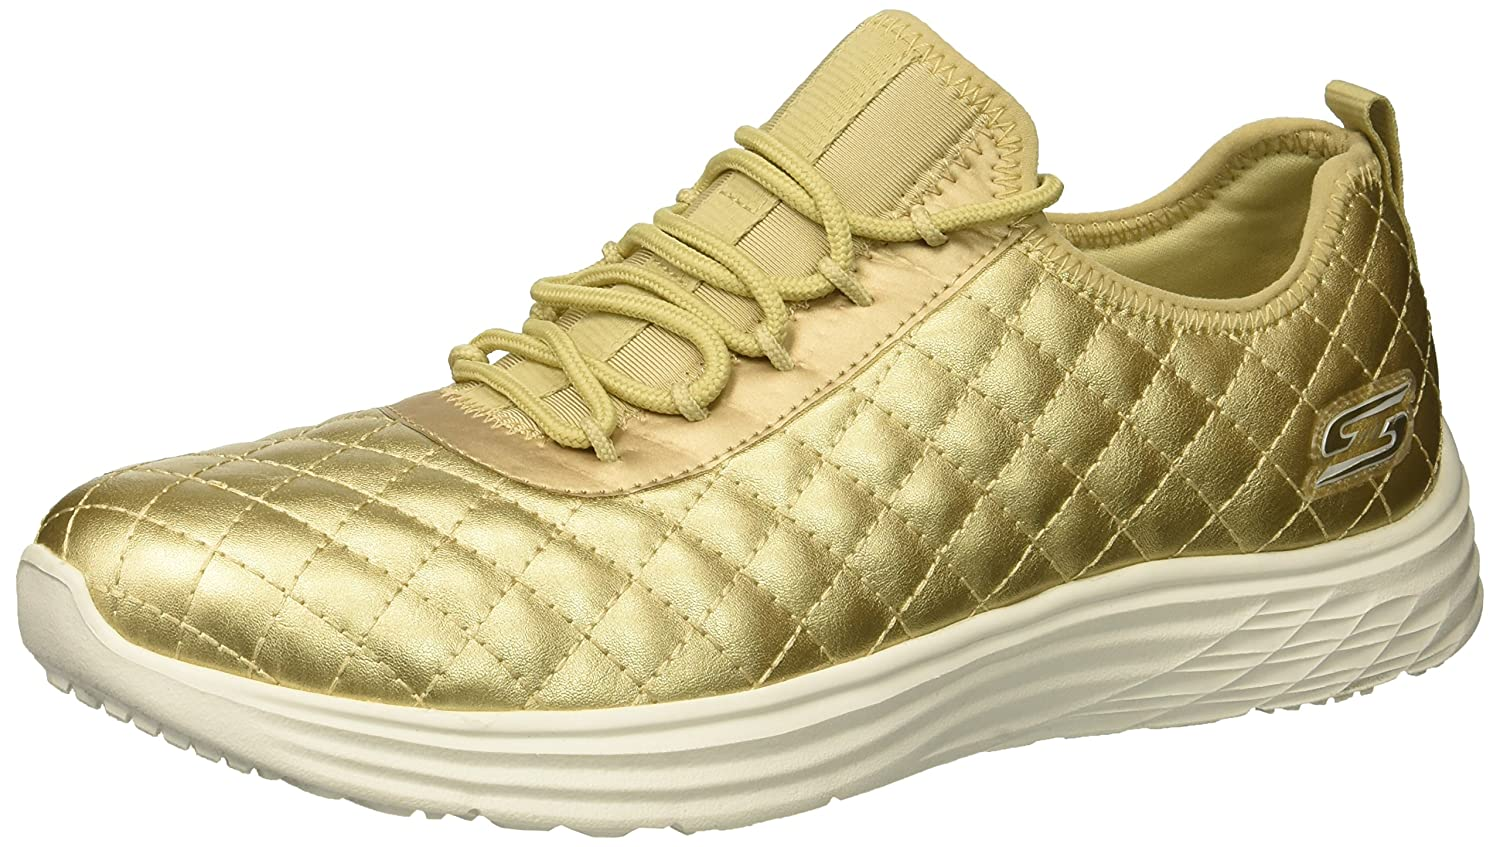 Skechers Damen Bobs Swift-Social Hustle Sneaker  35.5 EU|Gold